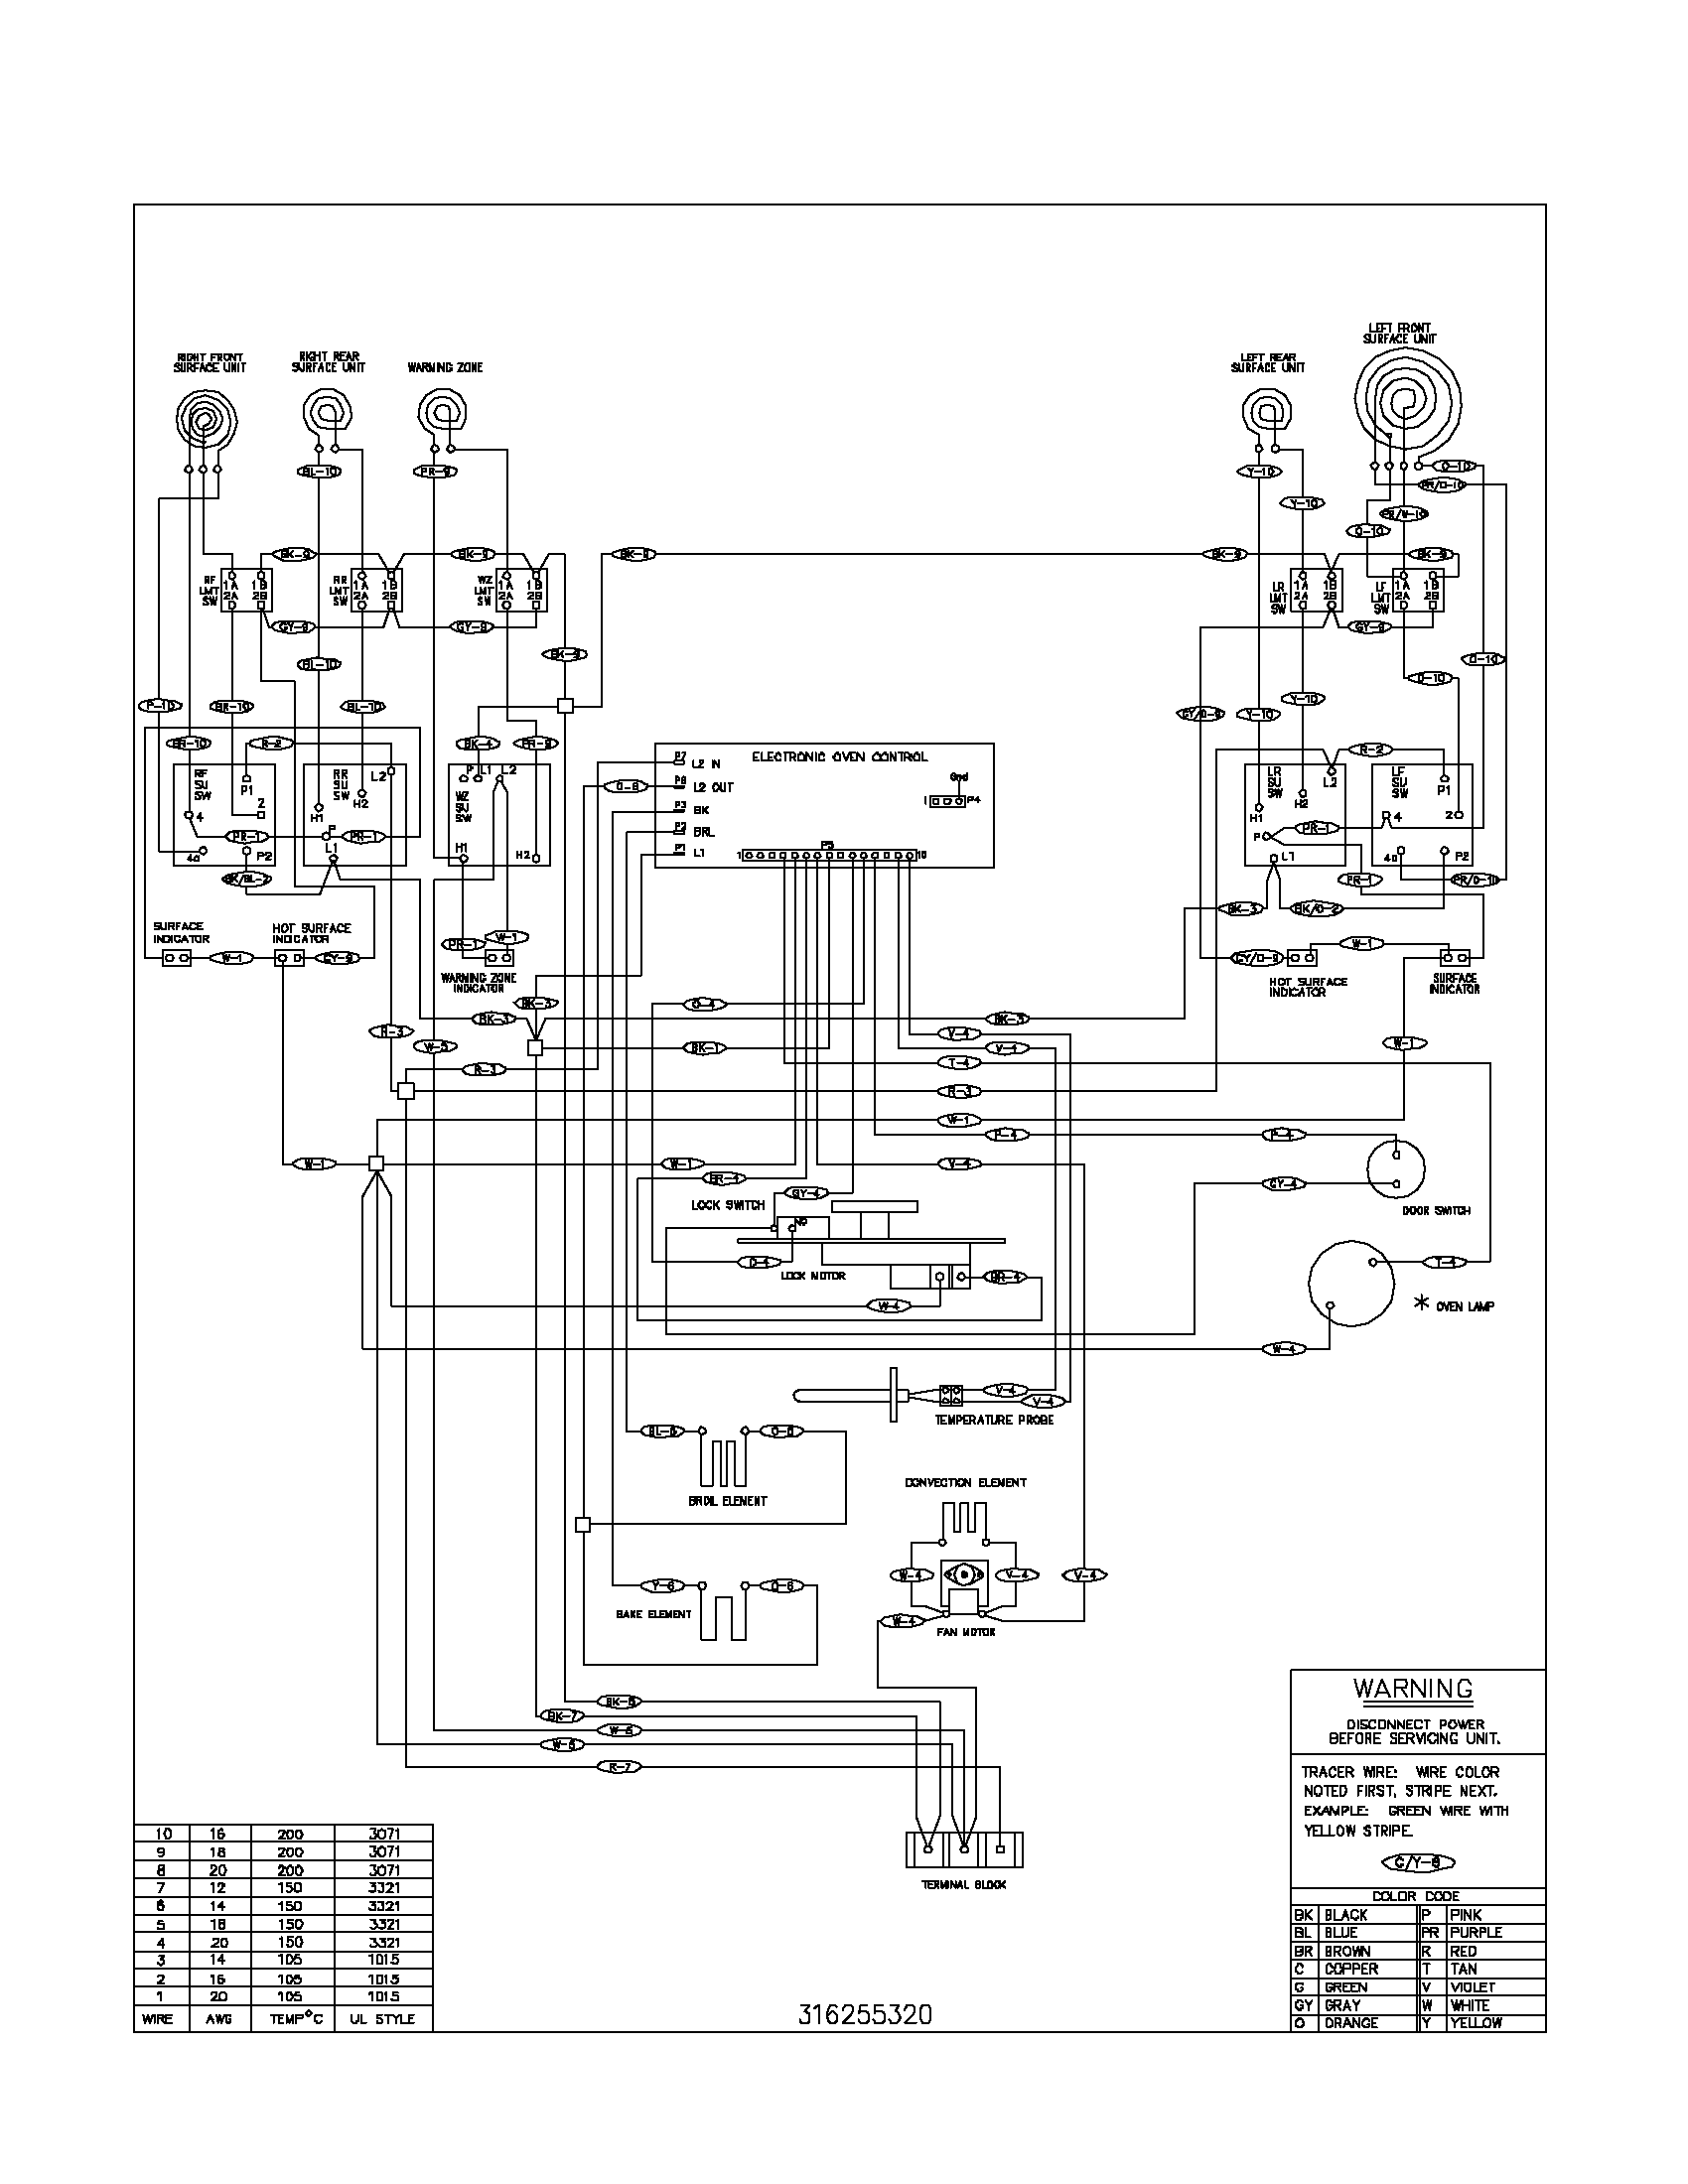 wiring diagram parts whirlpool fefl88acc electric range timer stove clocks and whirlpool hot water heater wiring diagram at alyssarenee.co